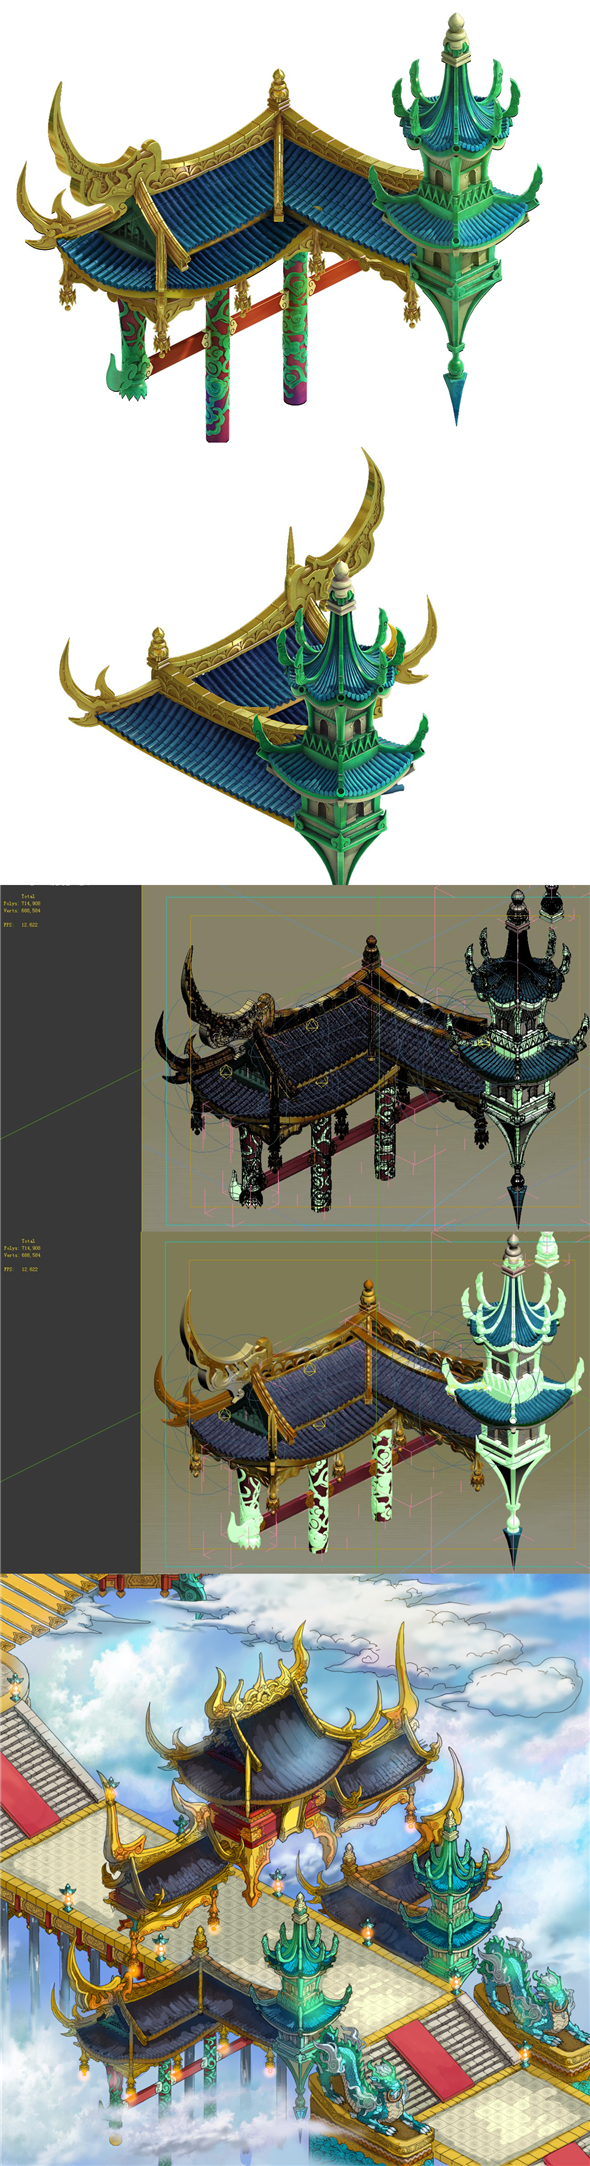 Game model - Bi La City - Royal palace part - 3DOcean Item for Sale